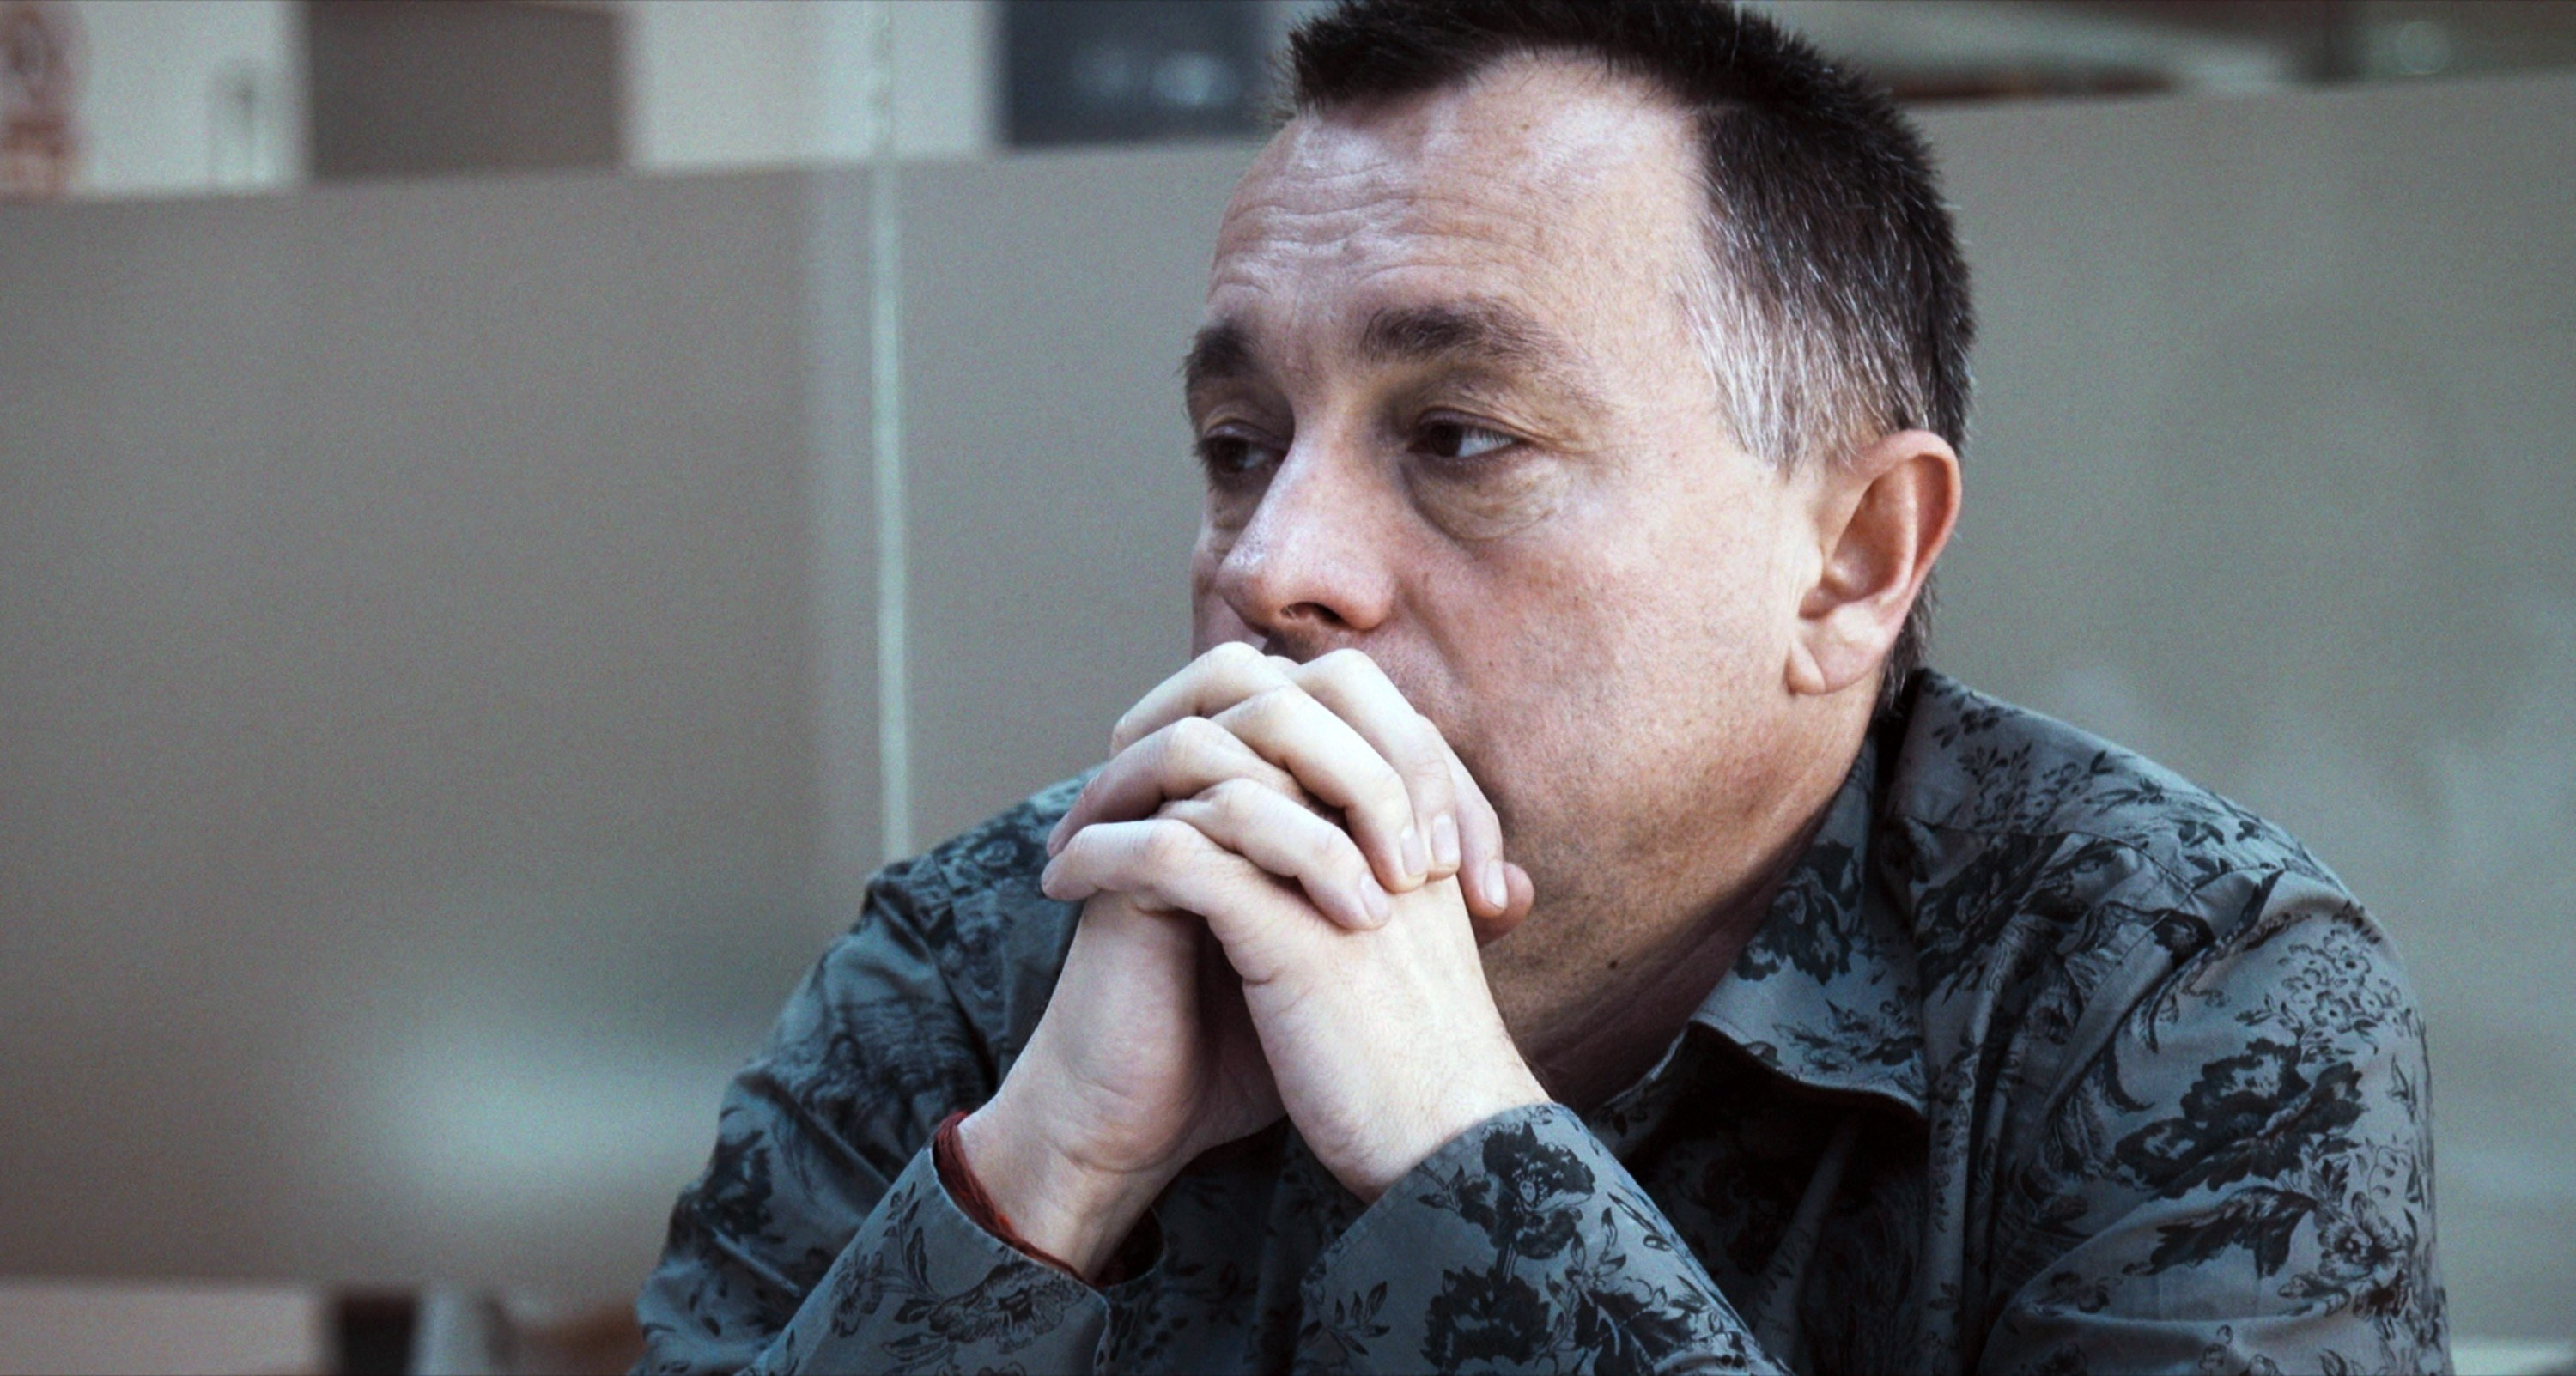 Sad-looking man sits with his hands clasped in front of his face